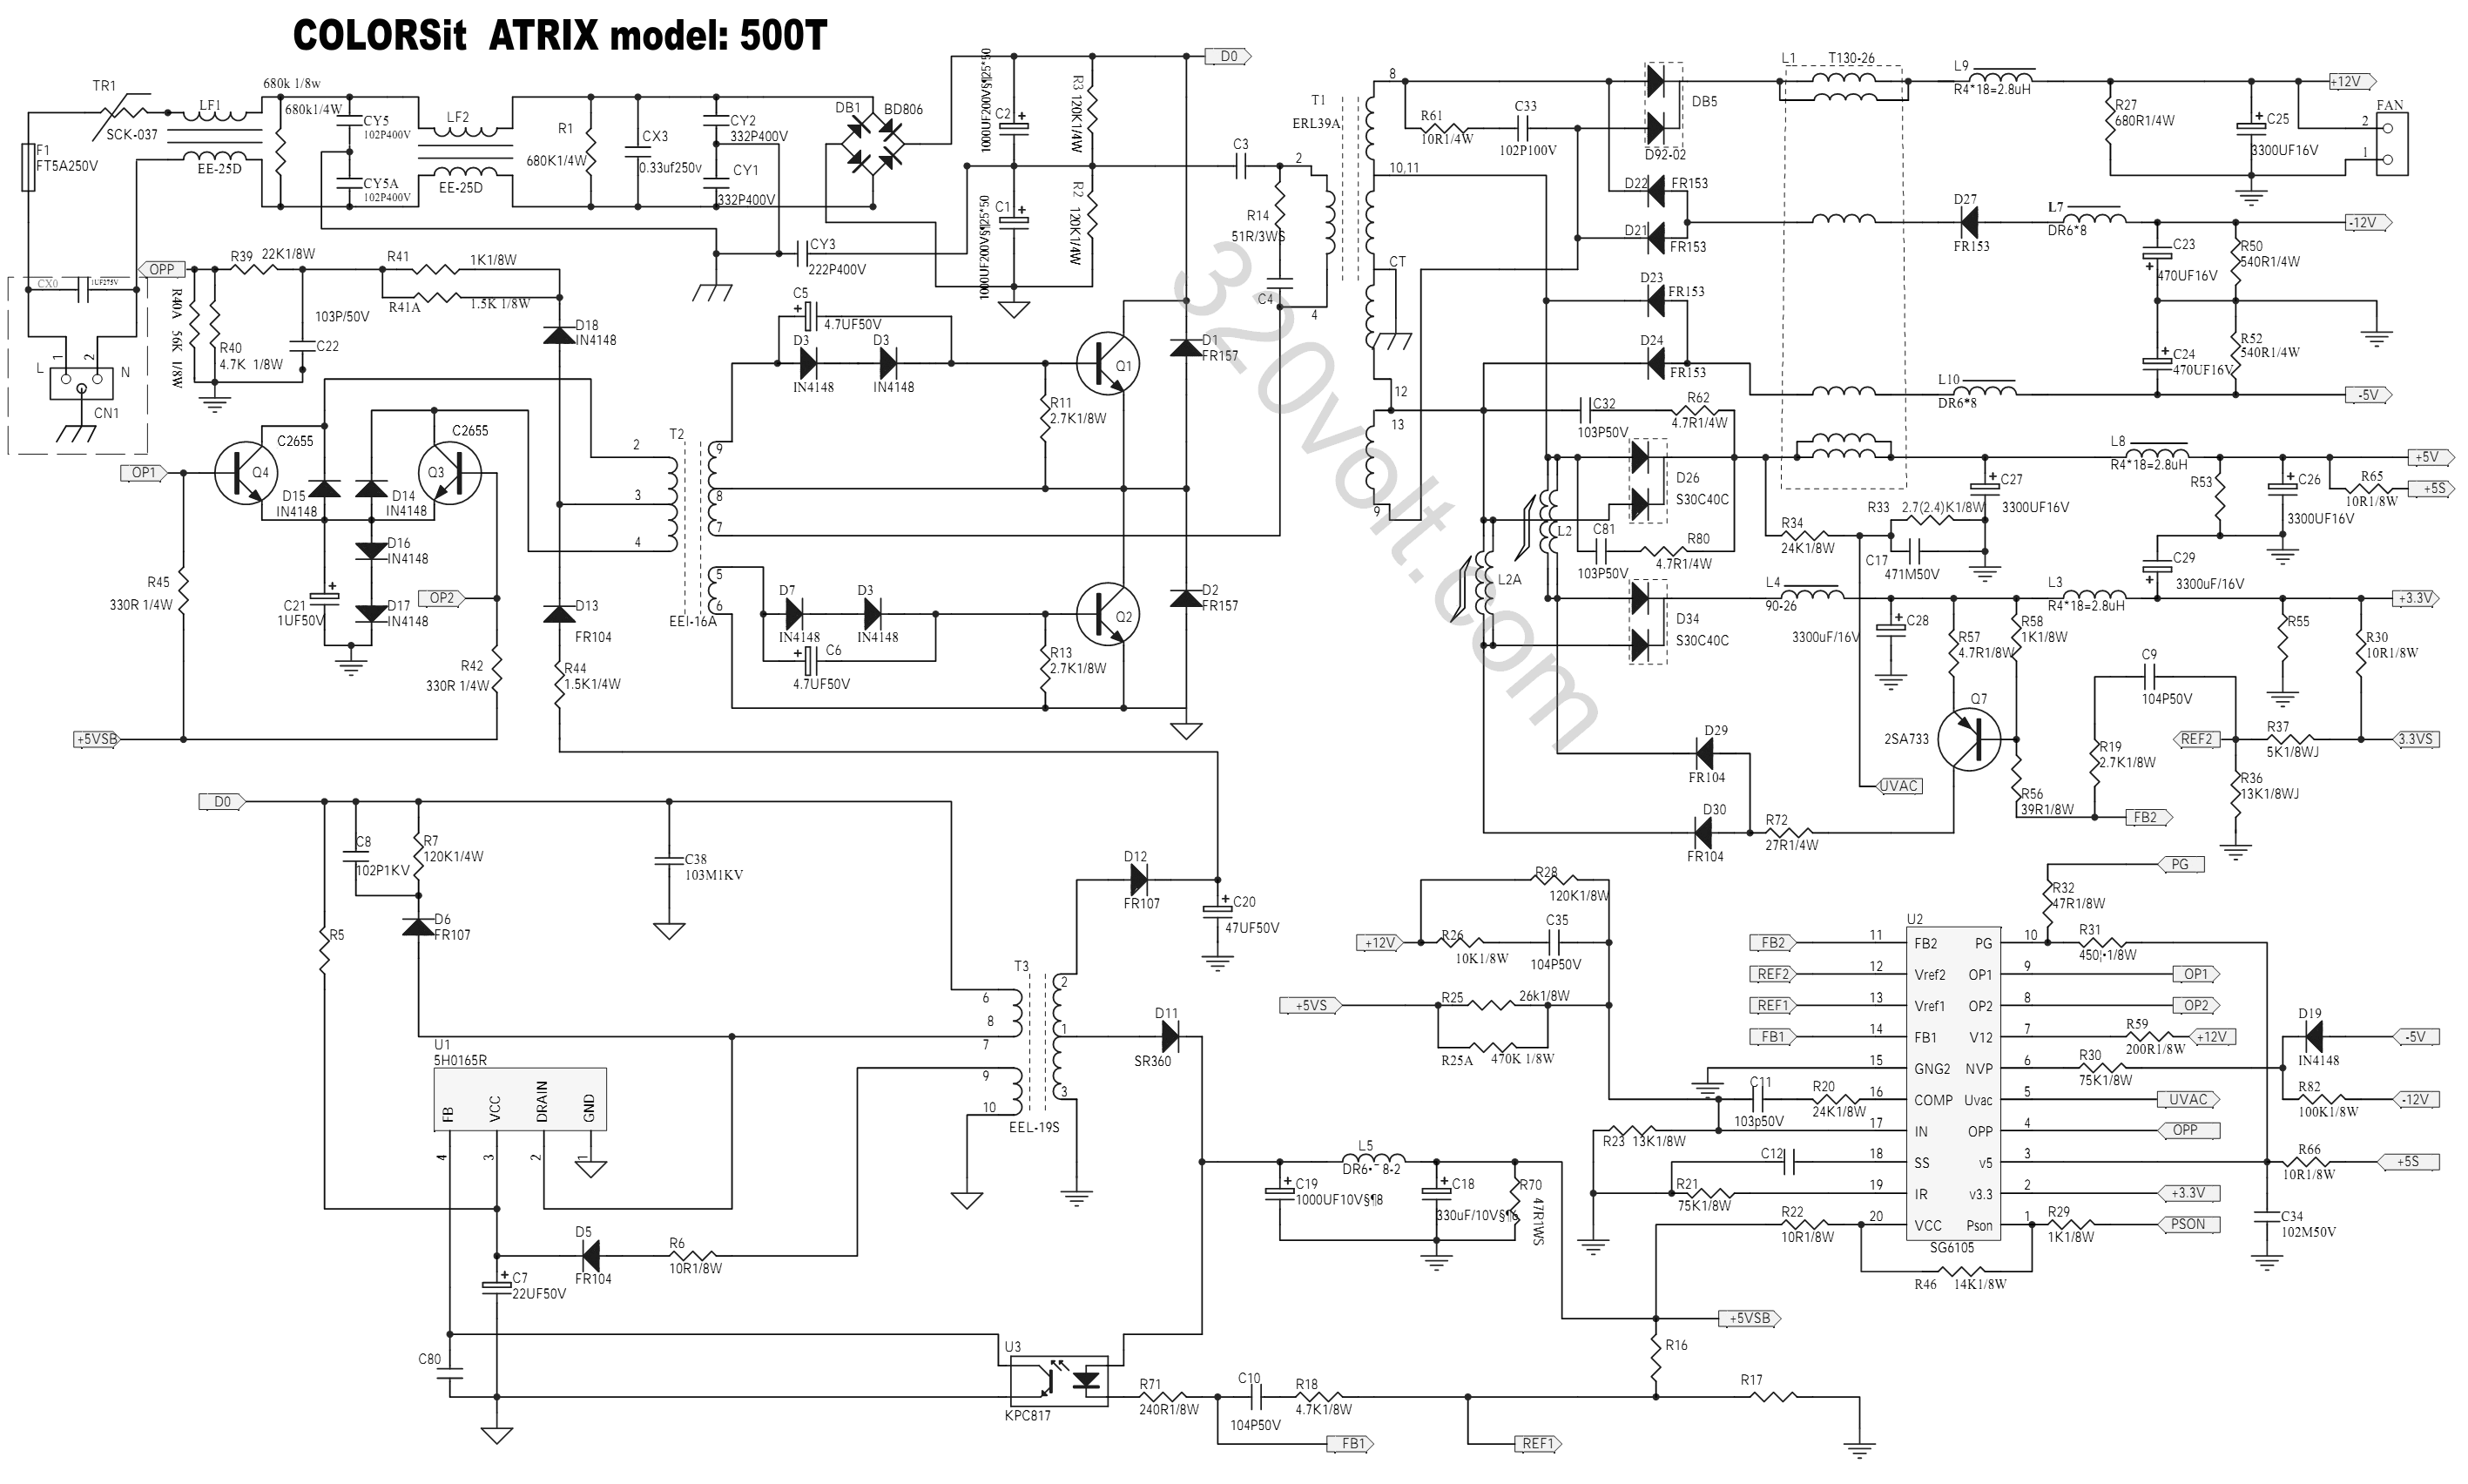 1000w Audio Smps Diagram Electrical Wiring Schematic Get Free Image About Emi Filter Dc To Converter Switching Power Supply Block